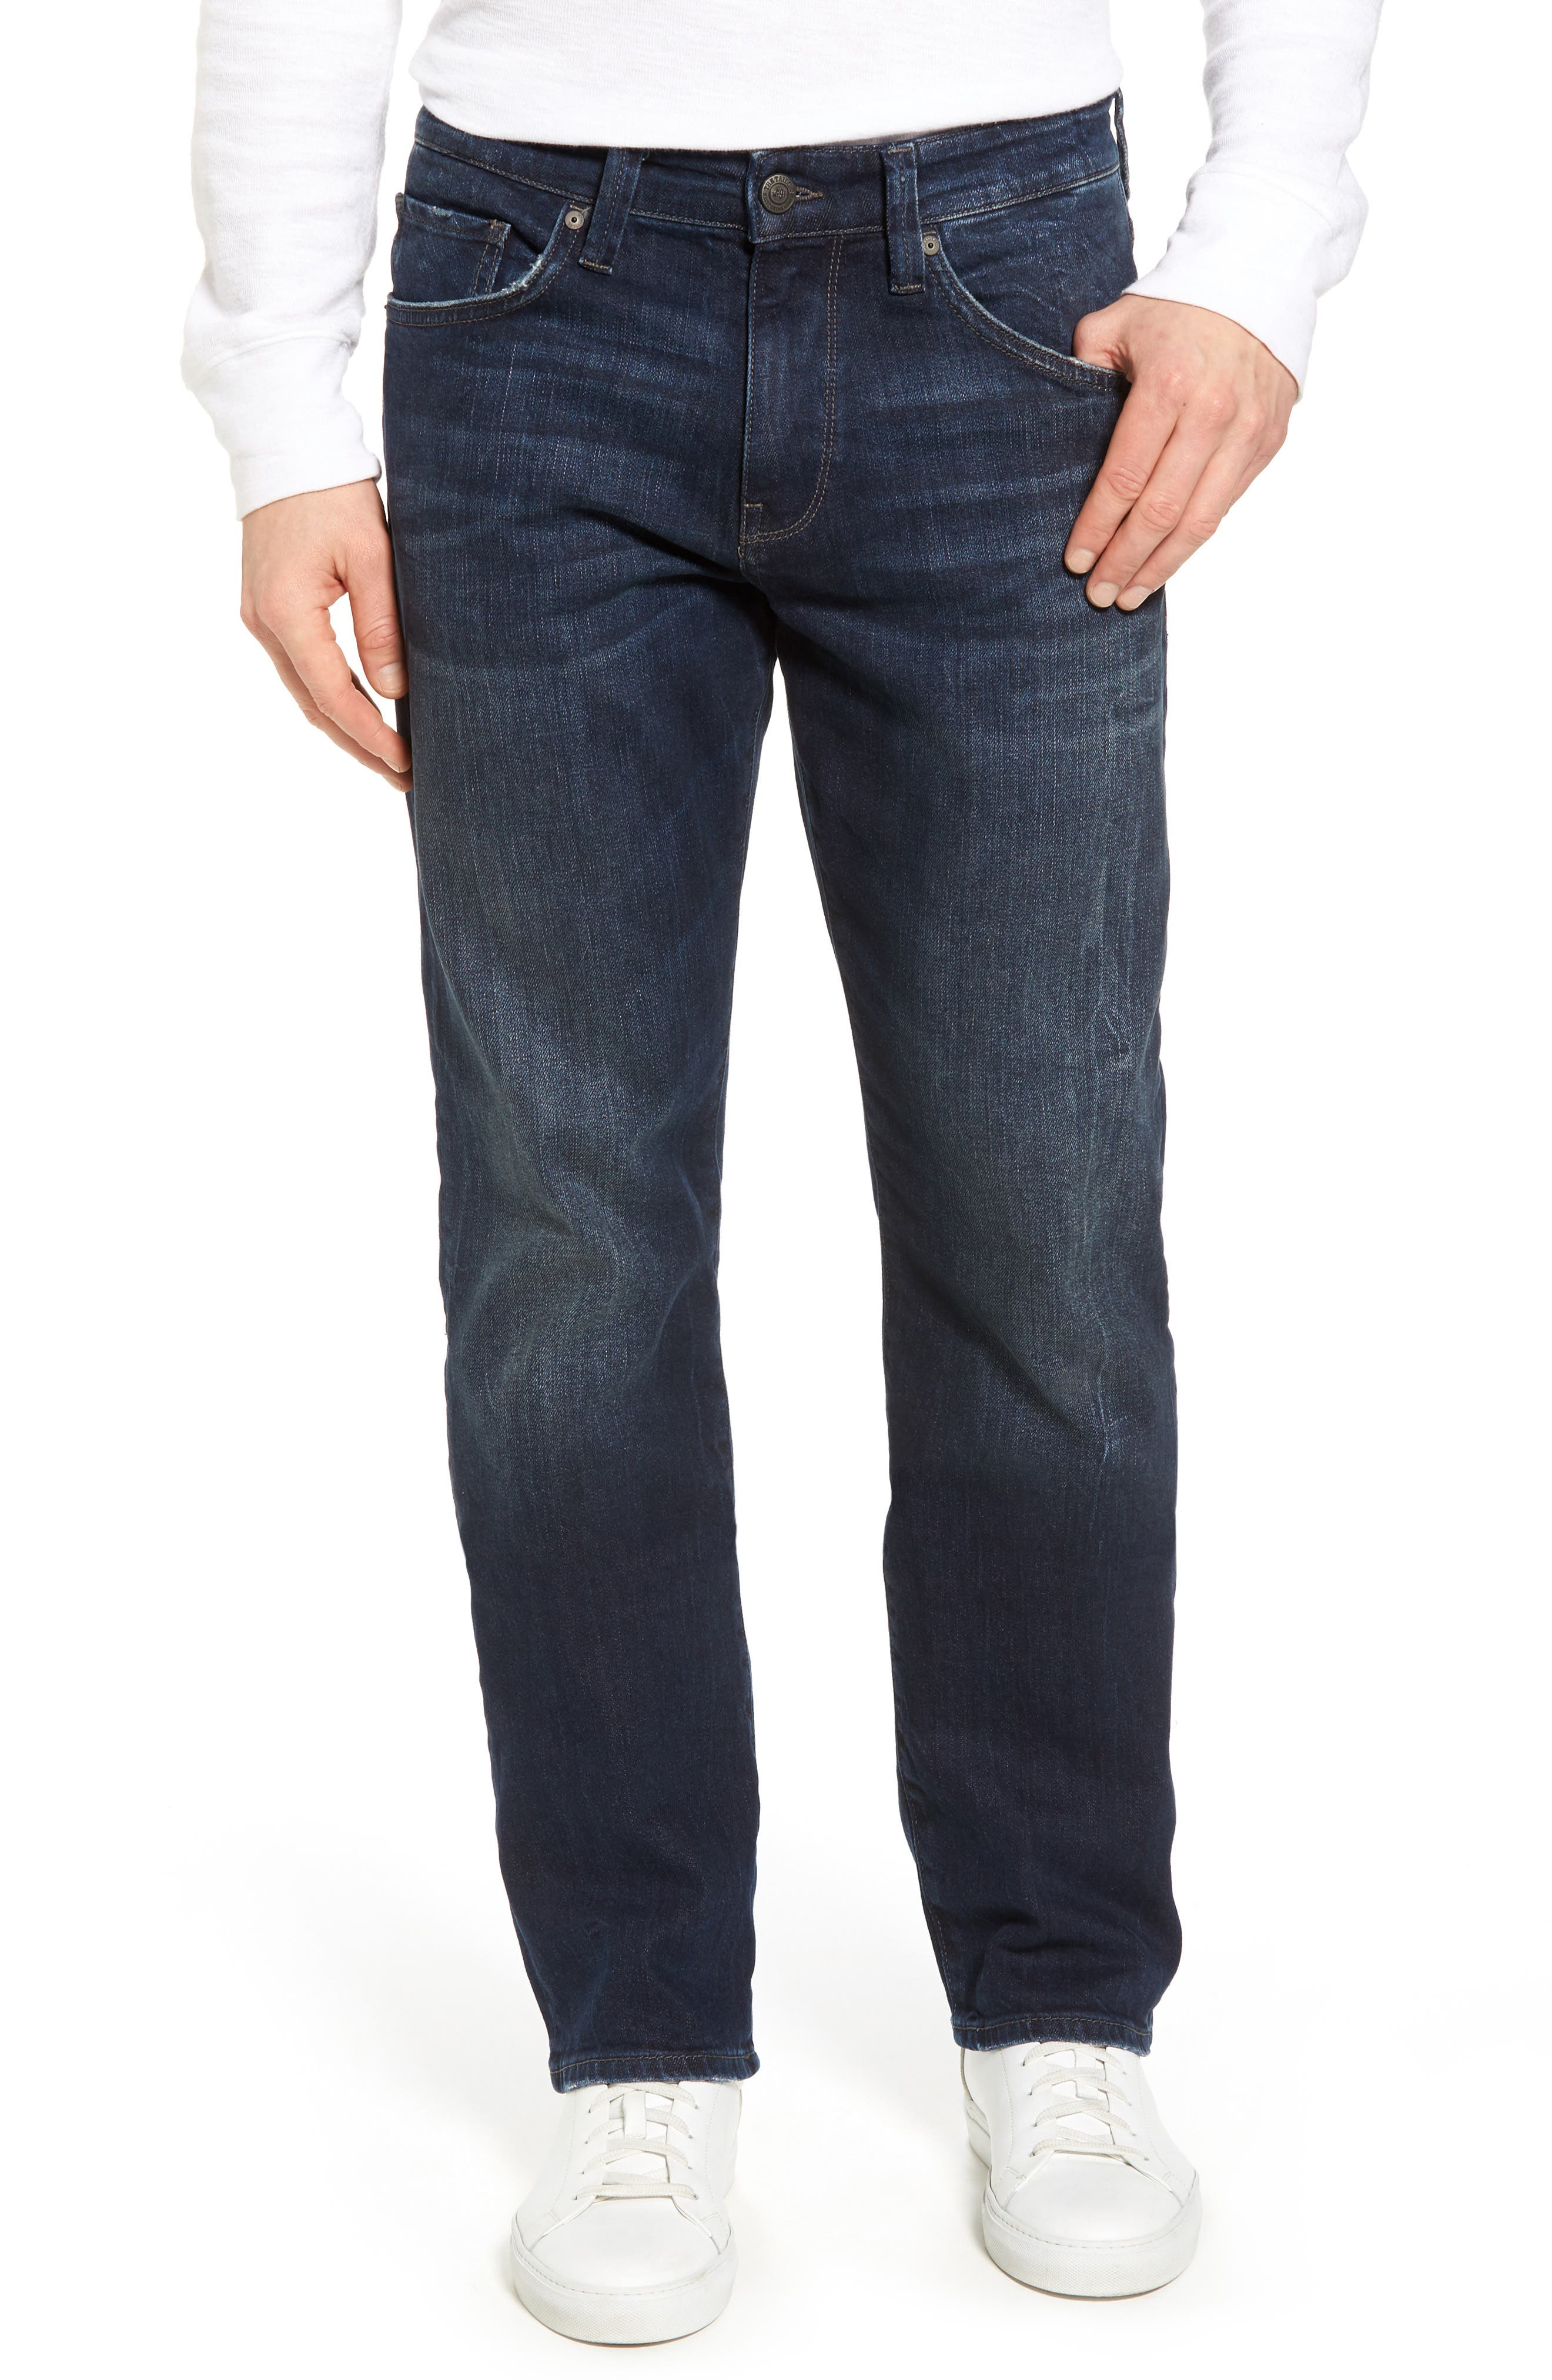 Myles Straight Leg Jeans,                         Main,                         color, 401